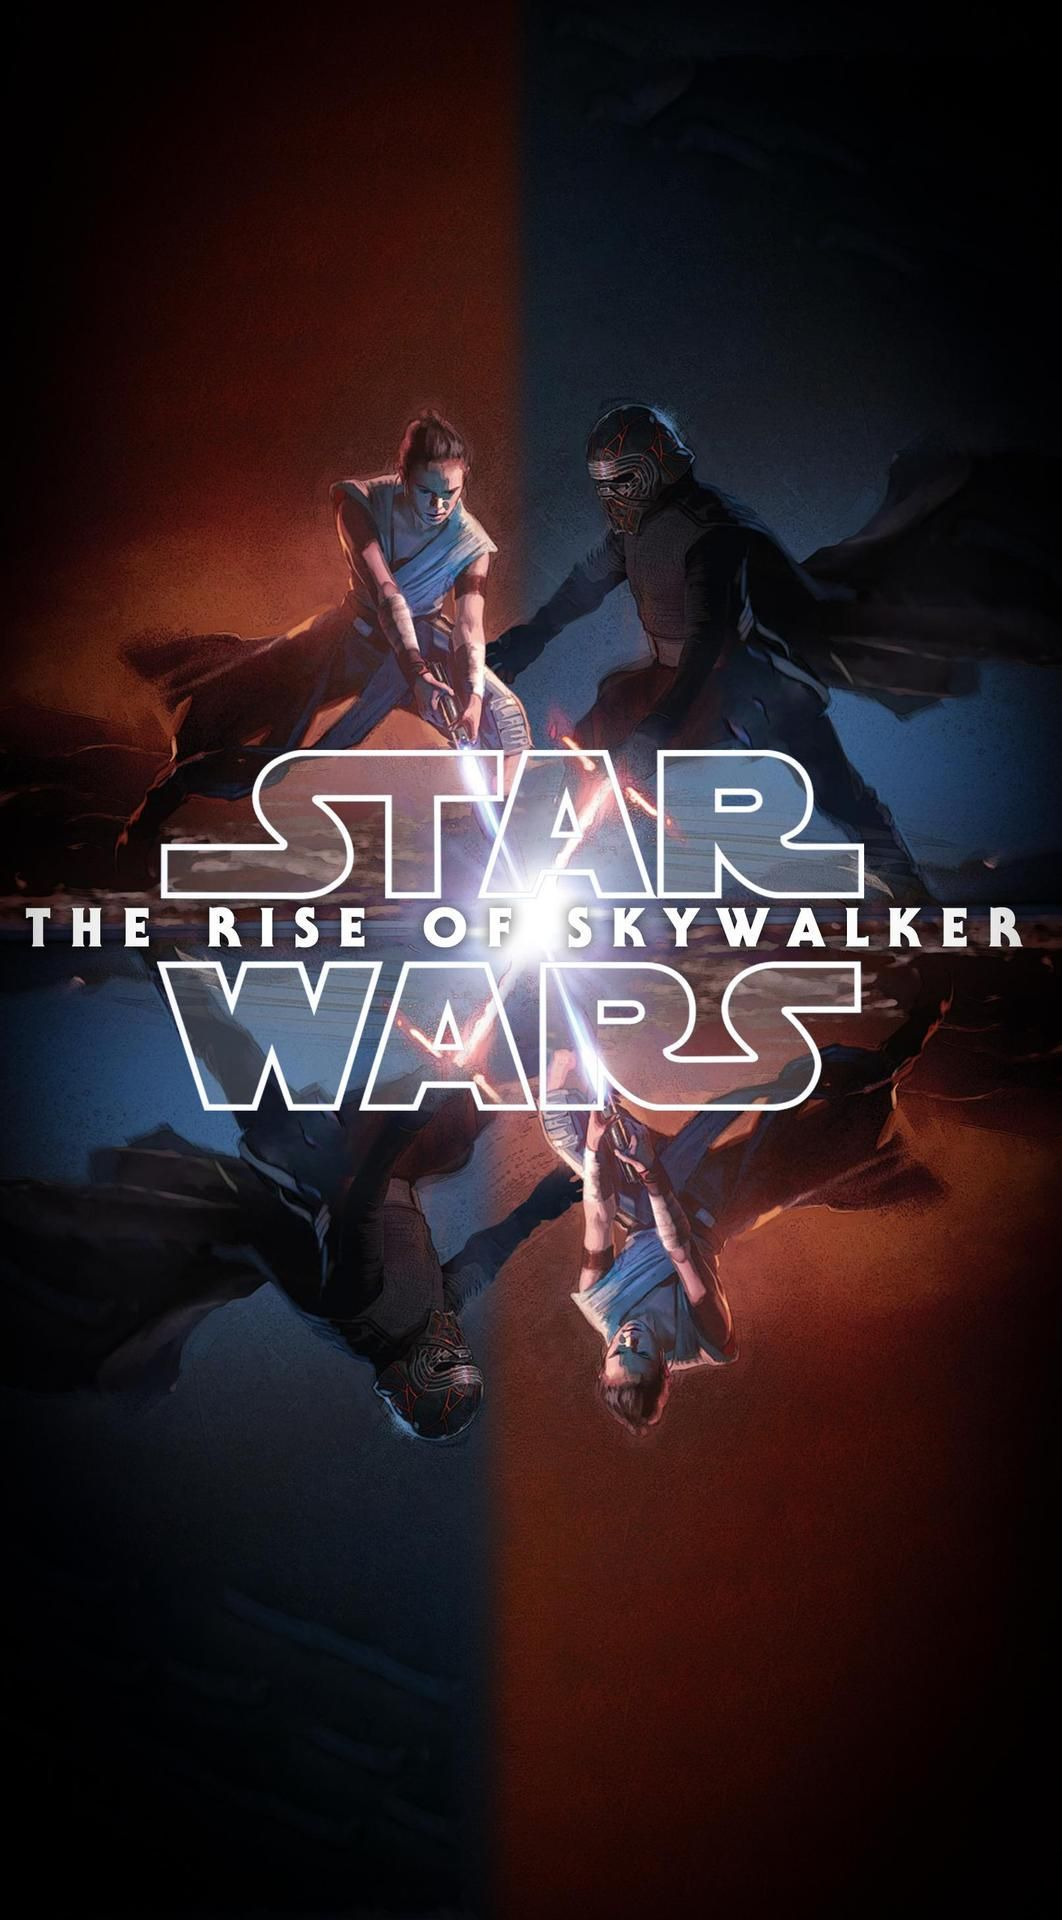 Star Wars The Rise Of Skywalker Hd Wallpapers 7wallpapers Net Rey Star Wars Star Wars Wallpaper Iphone Star Wars Wallpaper